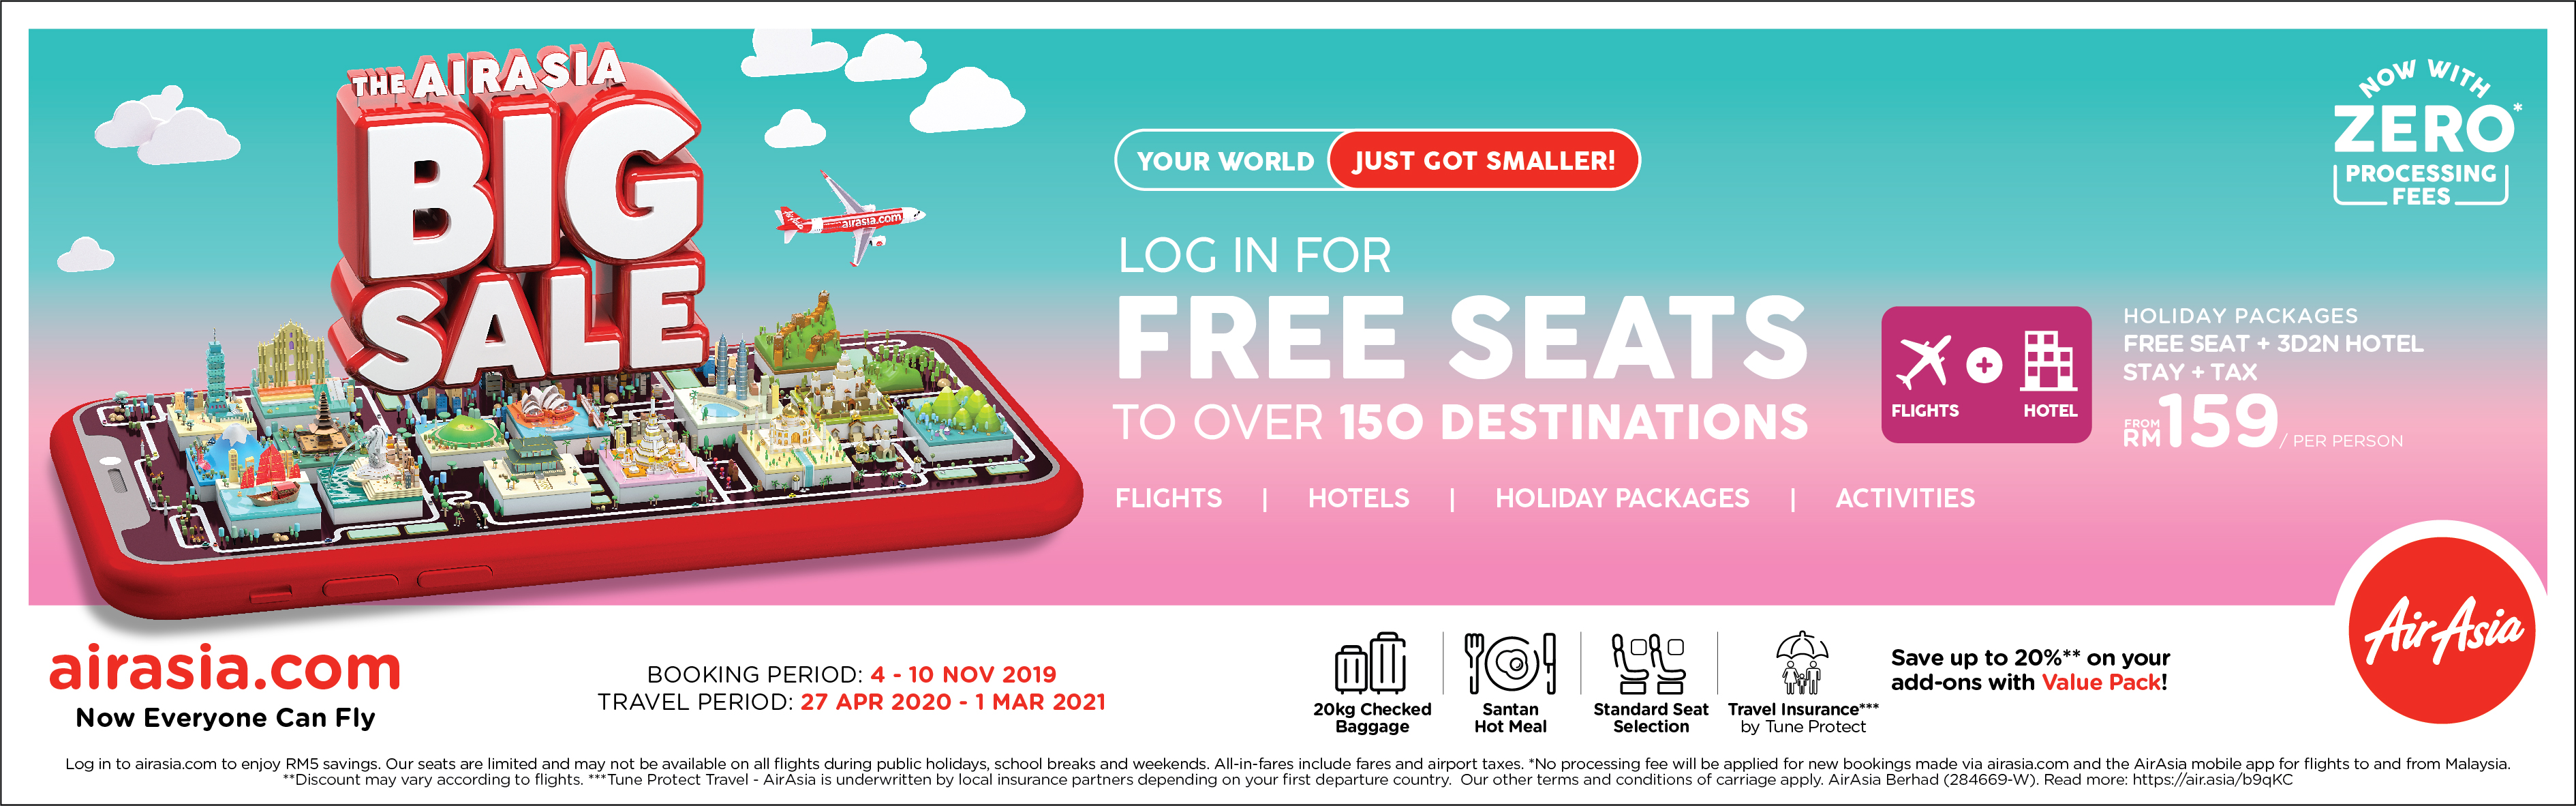 Airasia manage booking not member